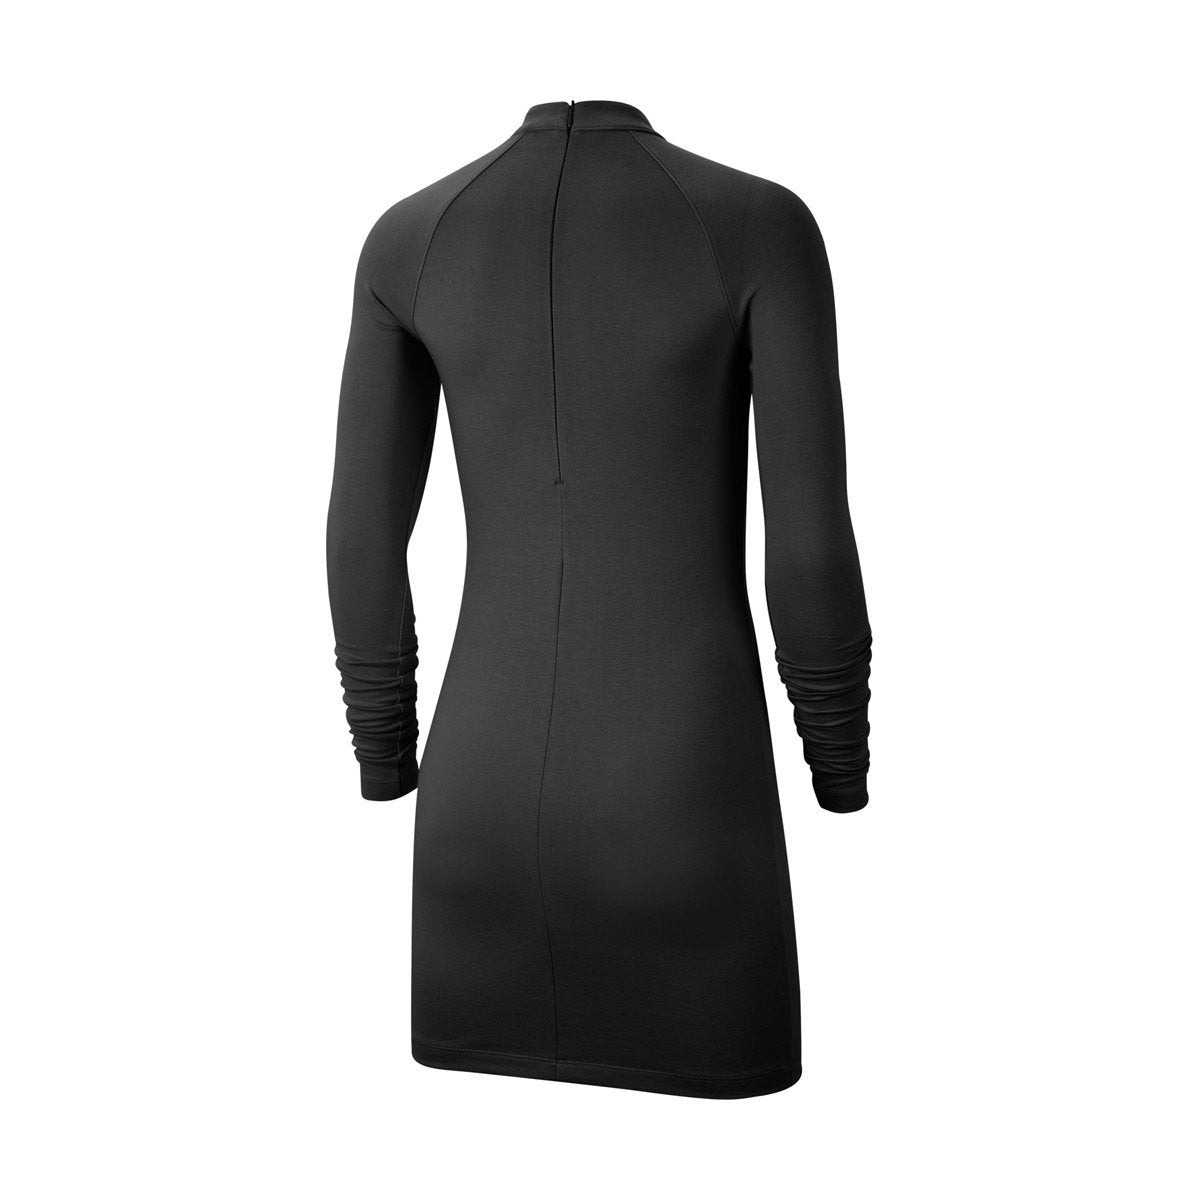 Nike Air Women's Long-Sleeve Dress